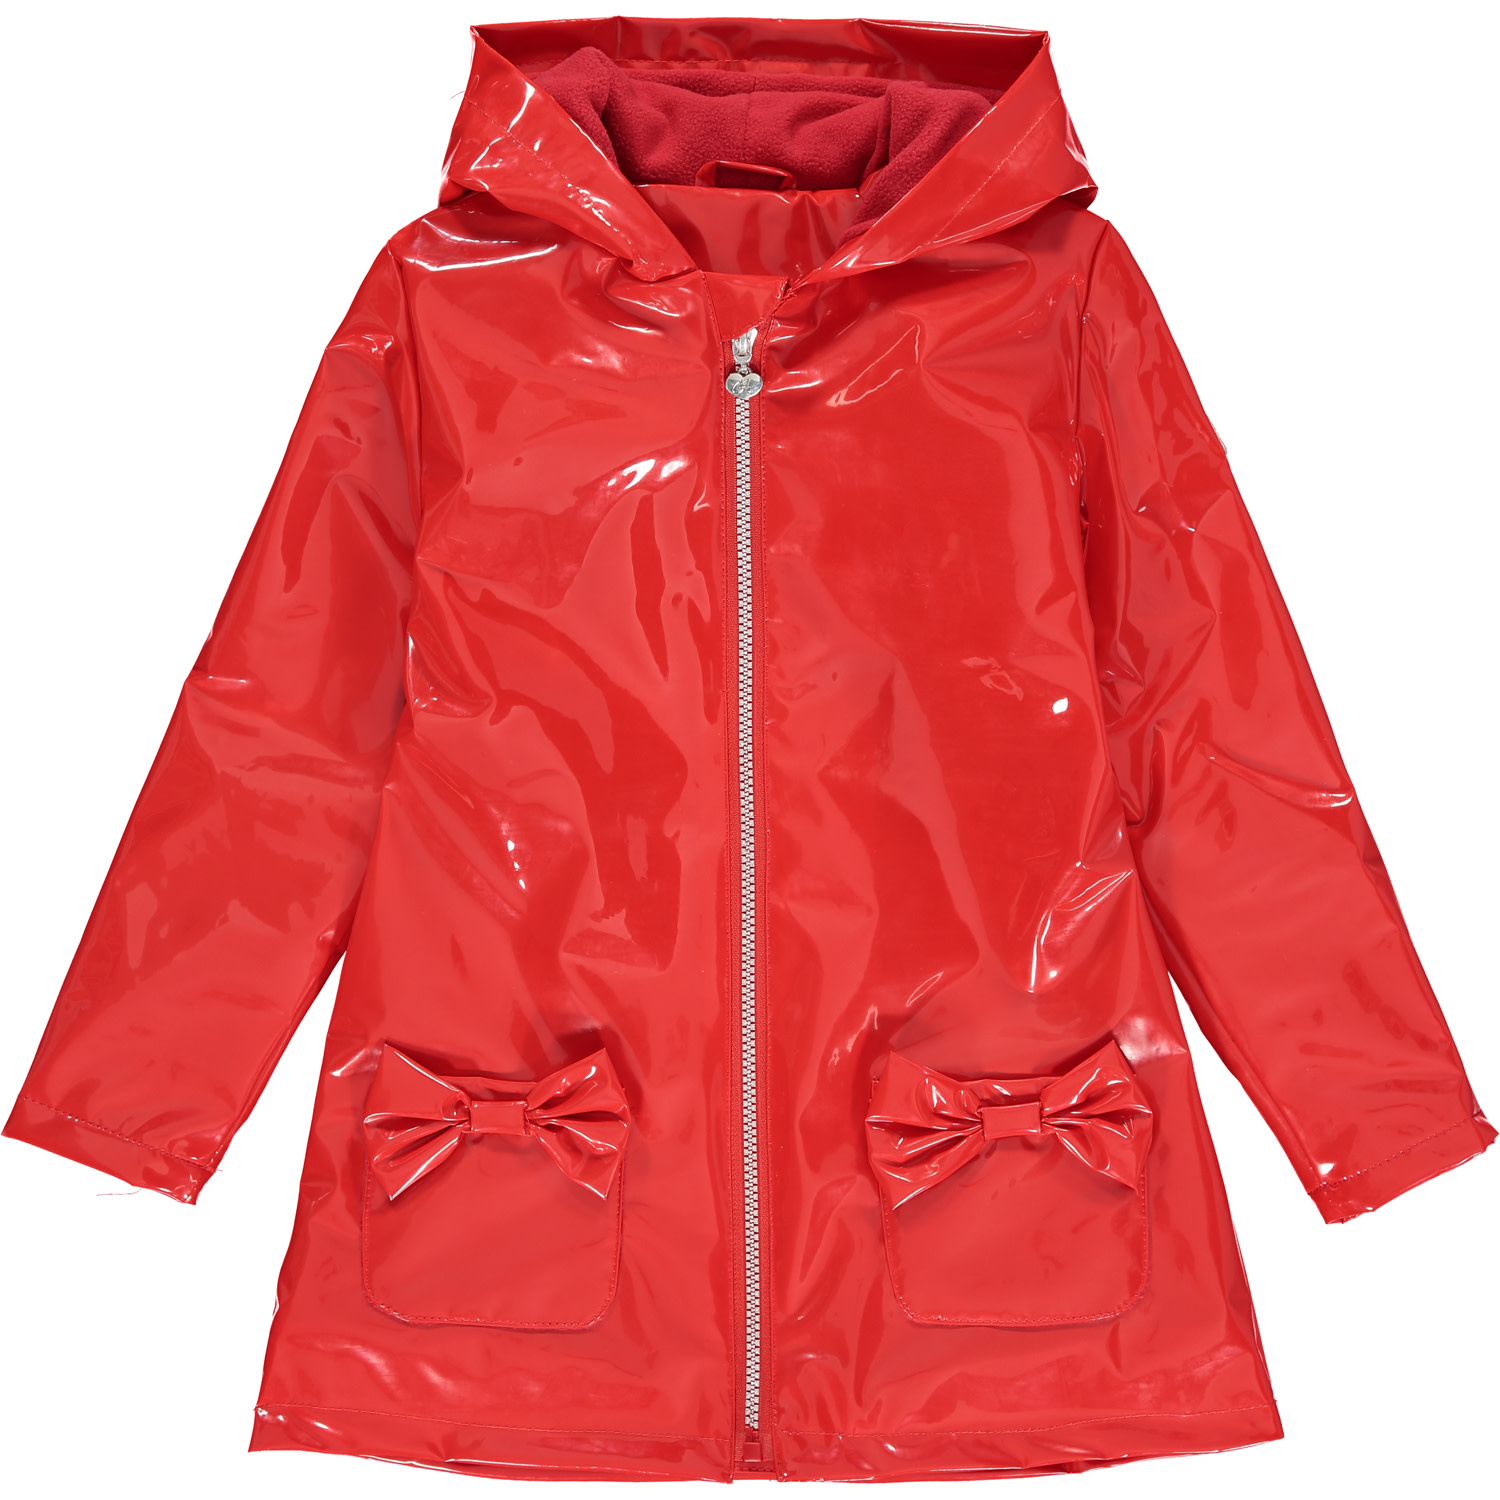 A Dee ADee Emily Red Raincoat